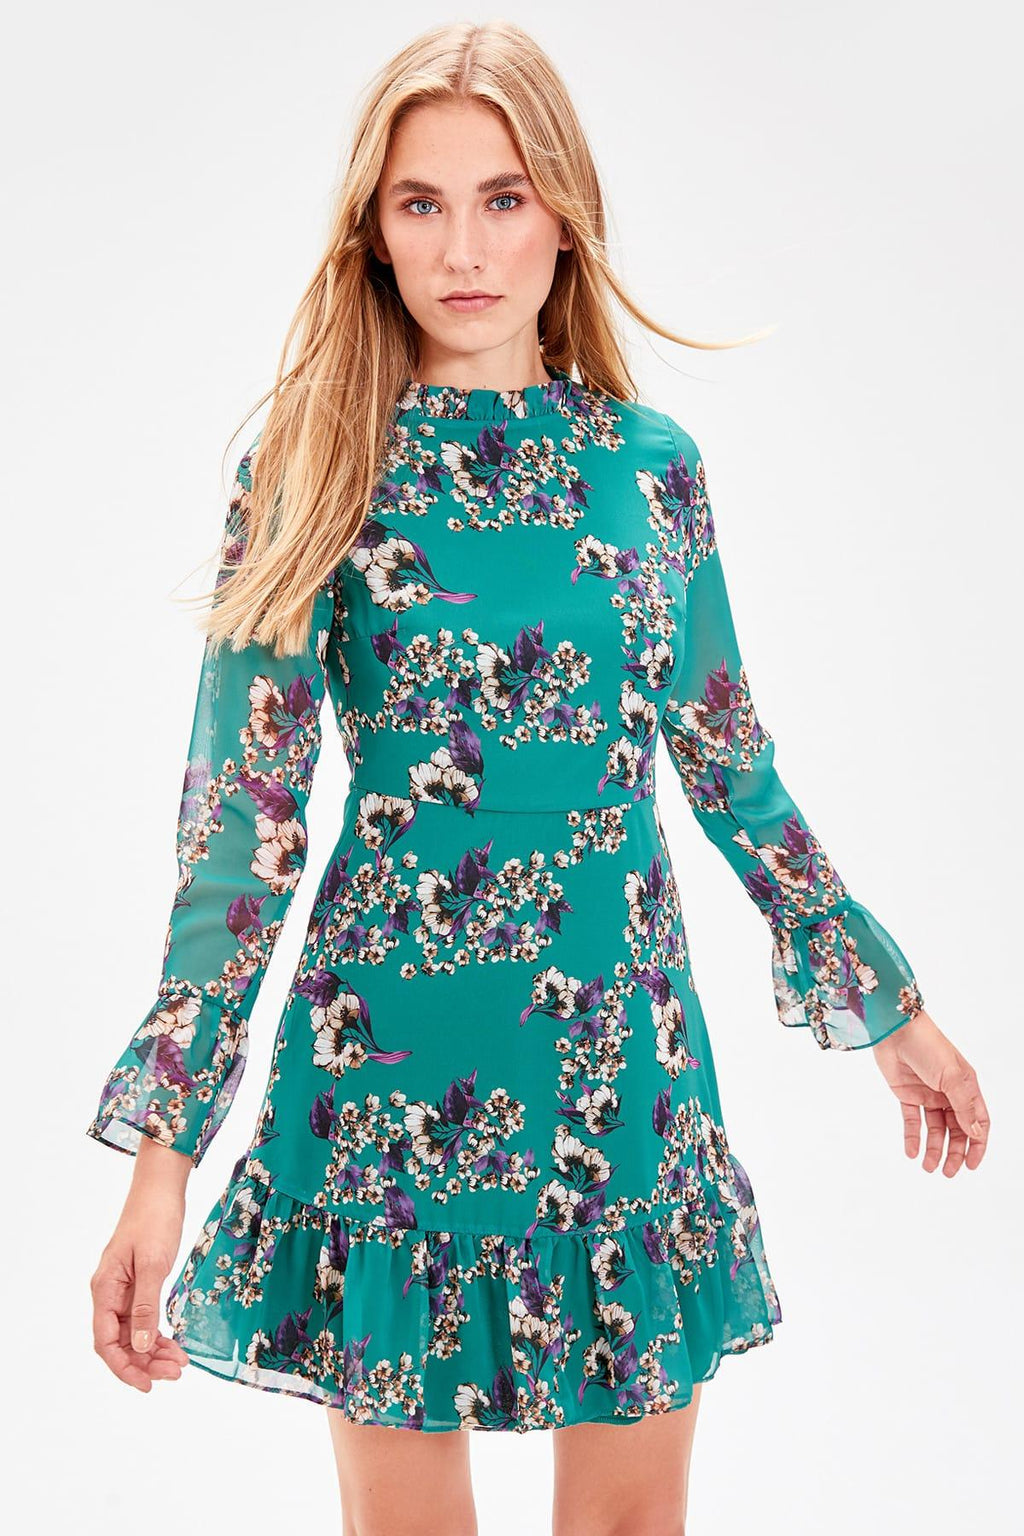 Emerald green Flower Pattern Dress - emuuz.com